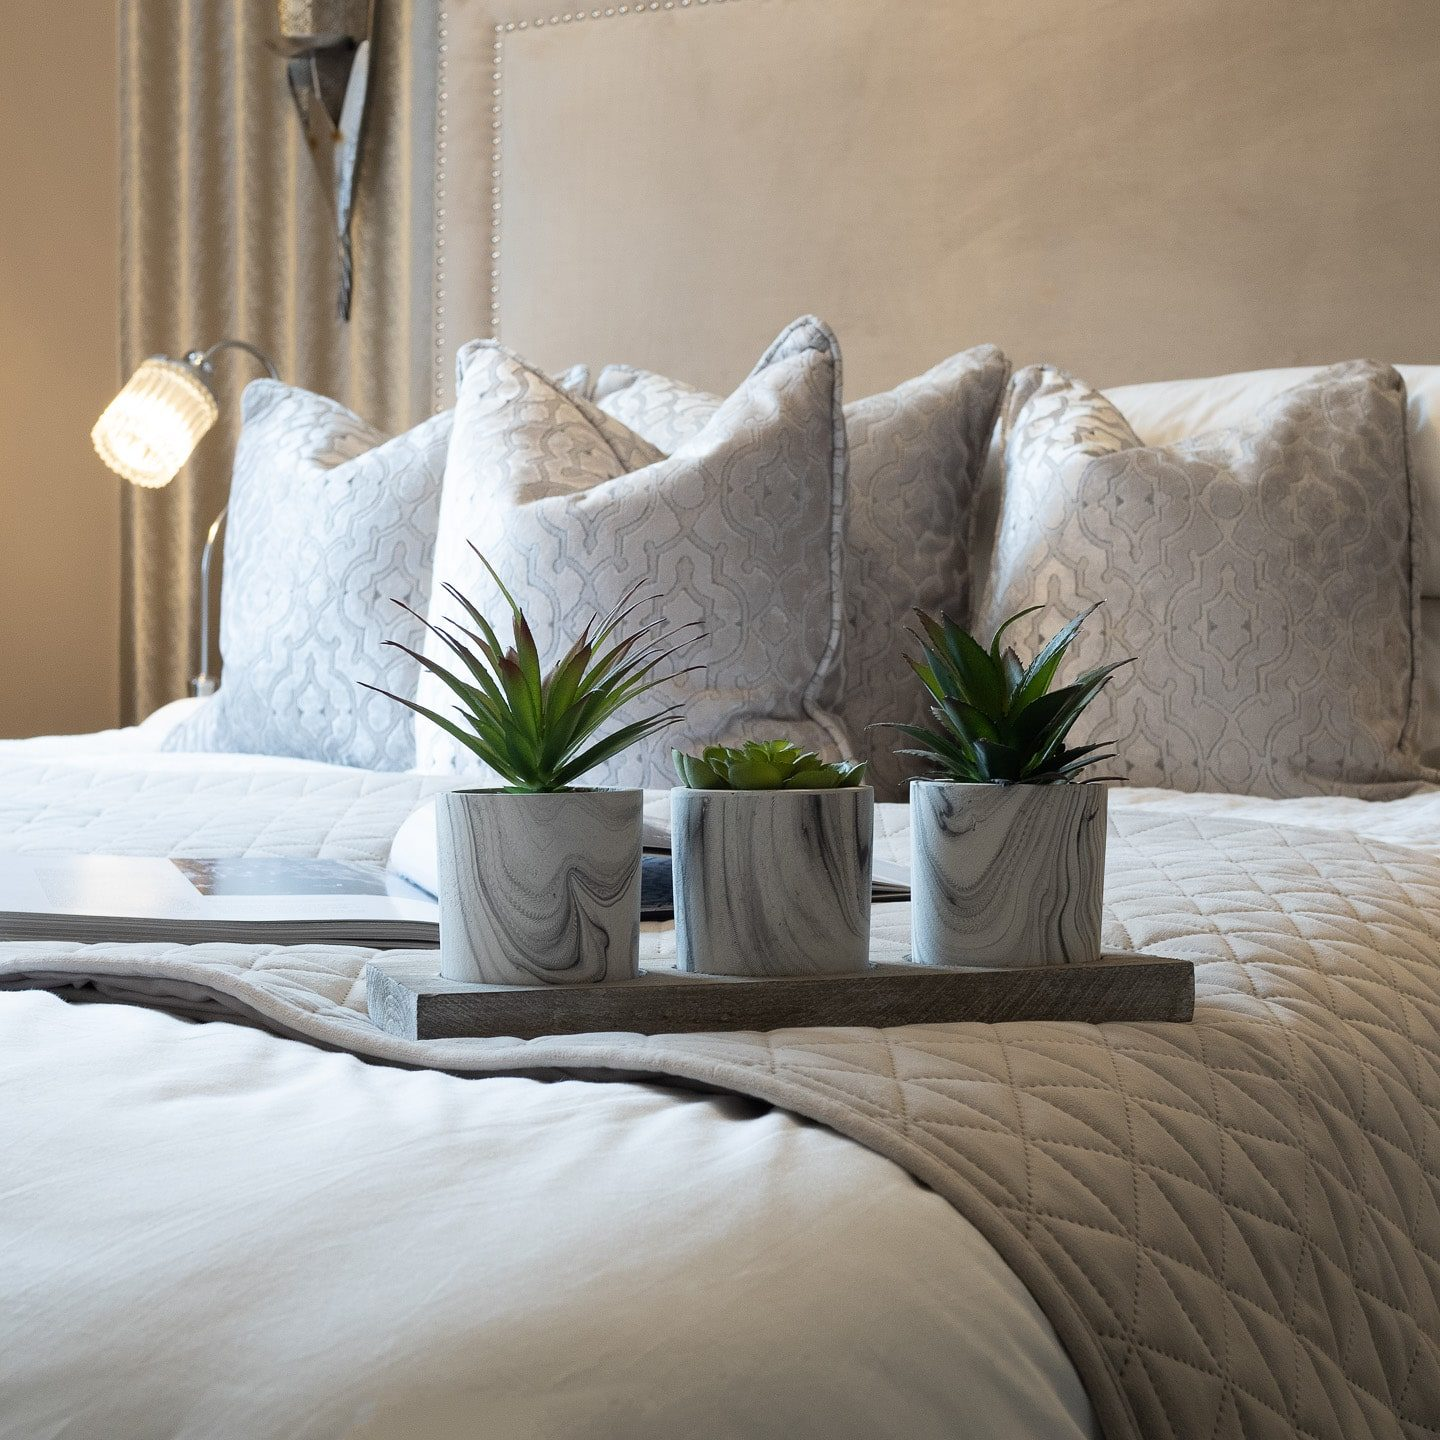 Plants on Bed